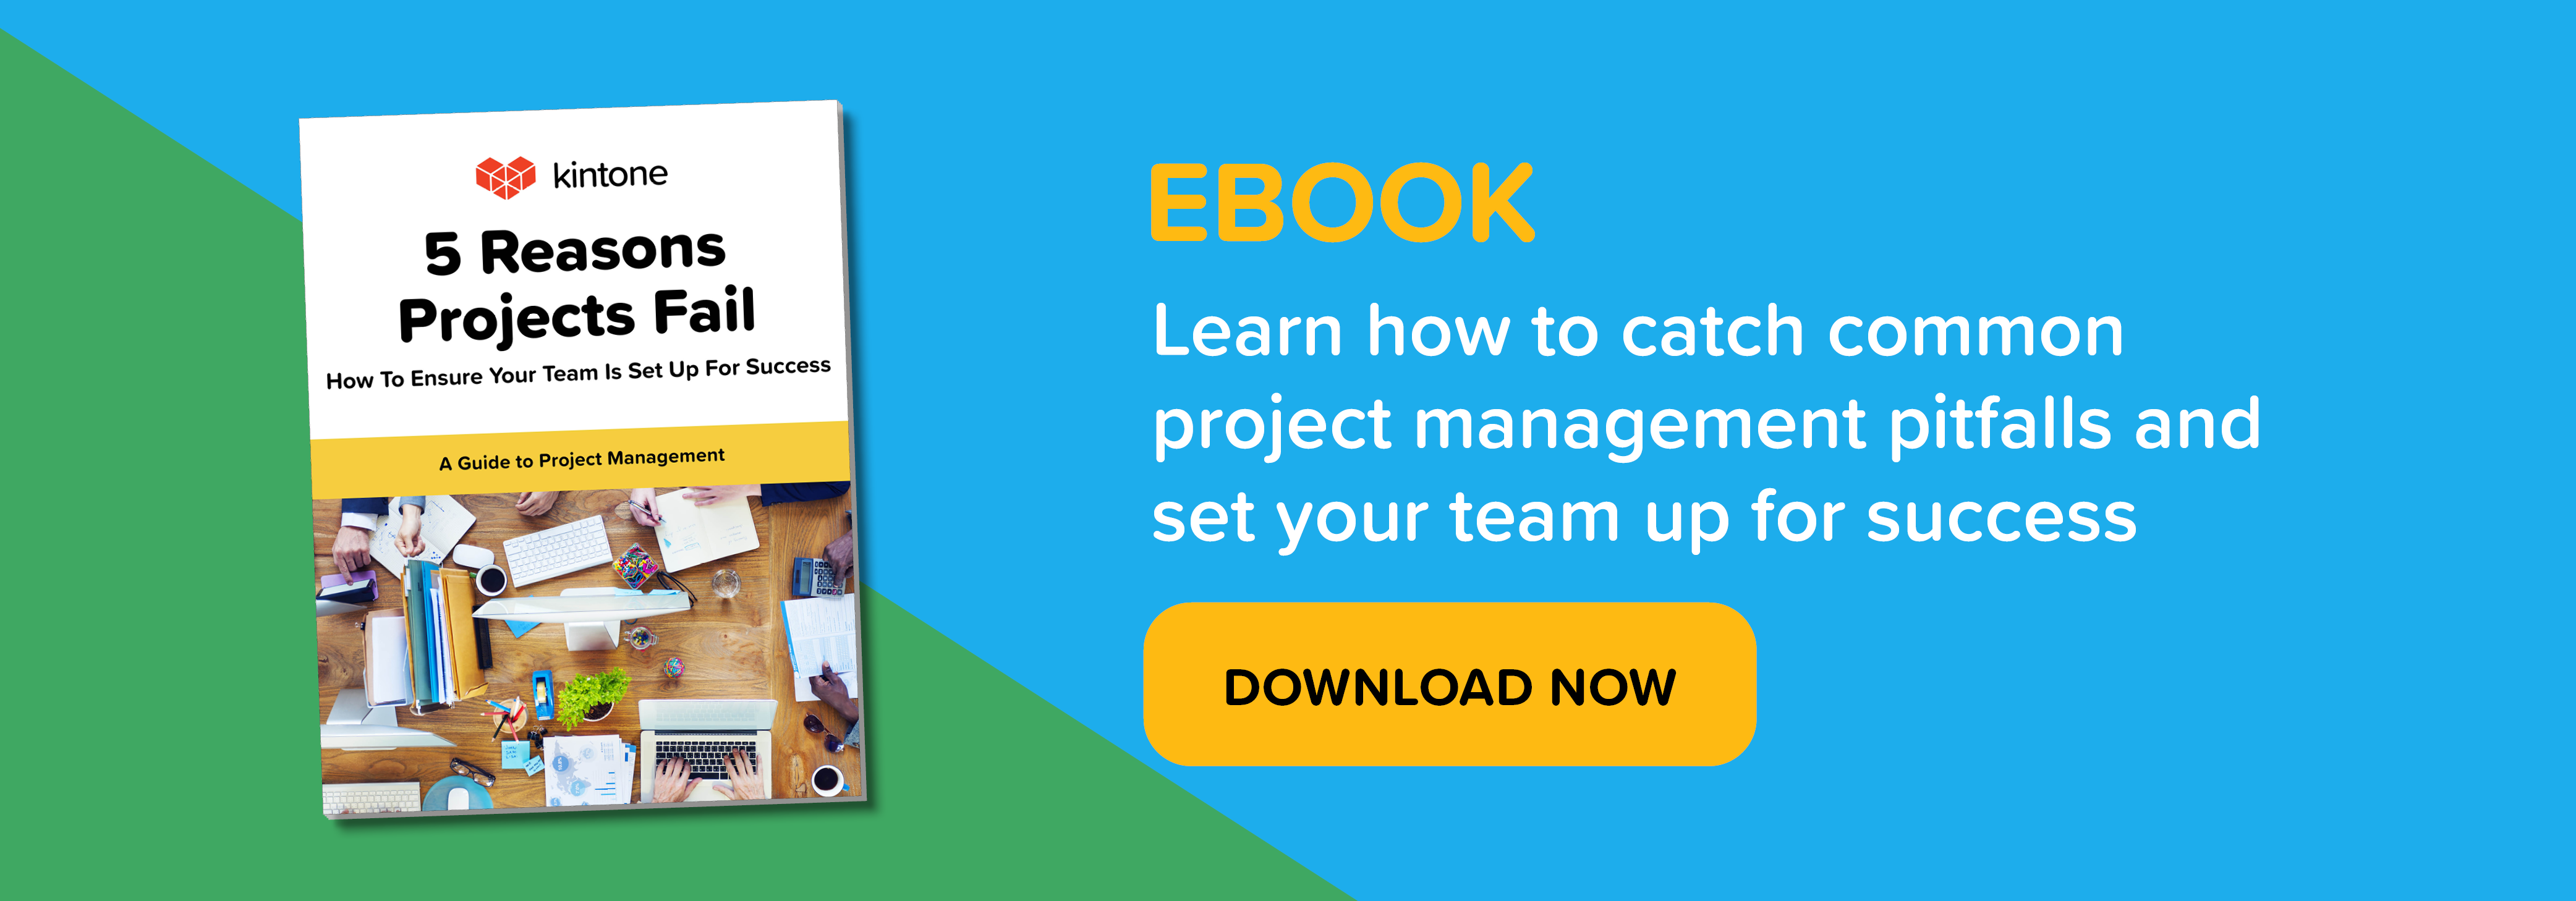 5 Reasons Projects Fail eBook Download